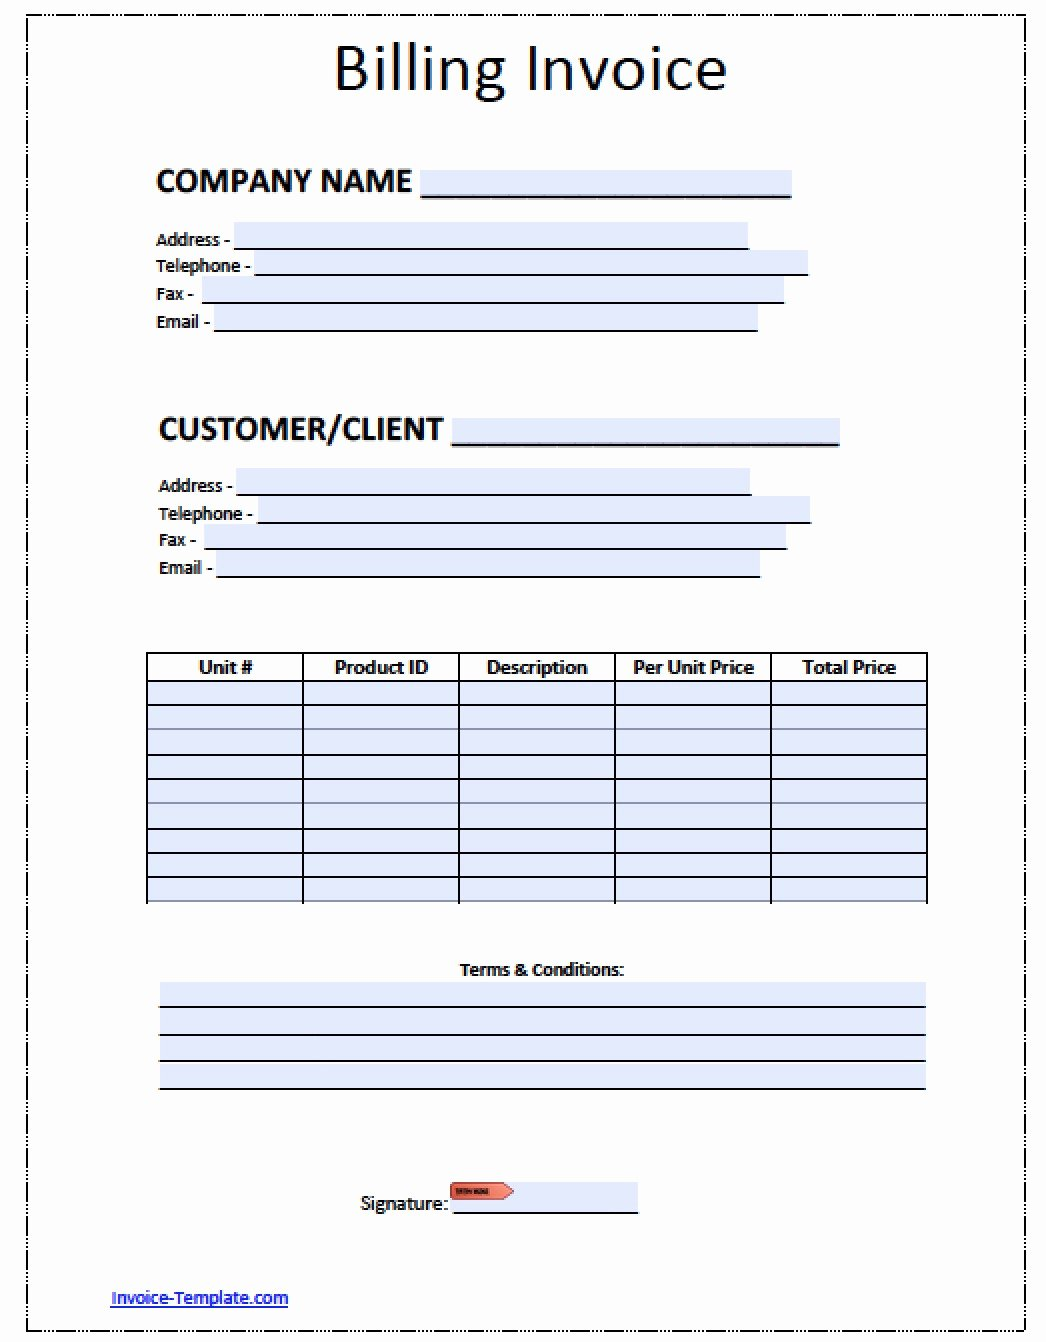 Child Care Invoice Template Inspirational Child Care Invoice Template Eliolera – Templatesinvoice